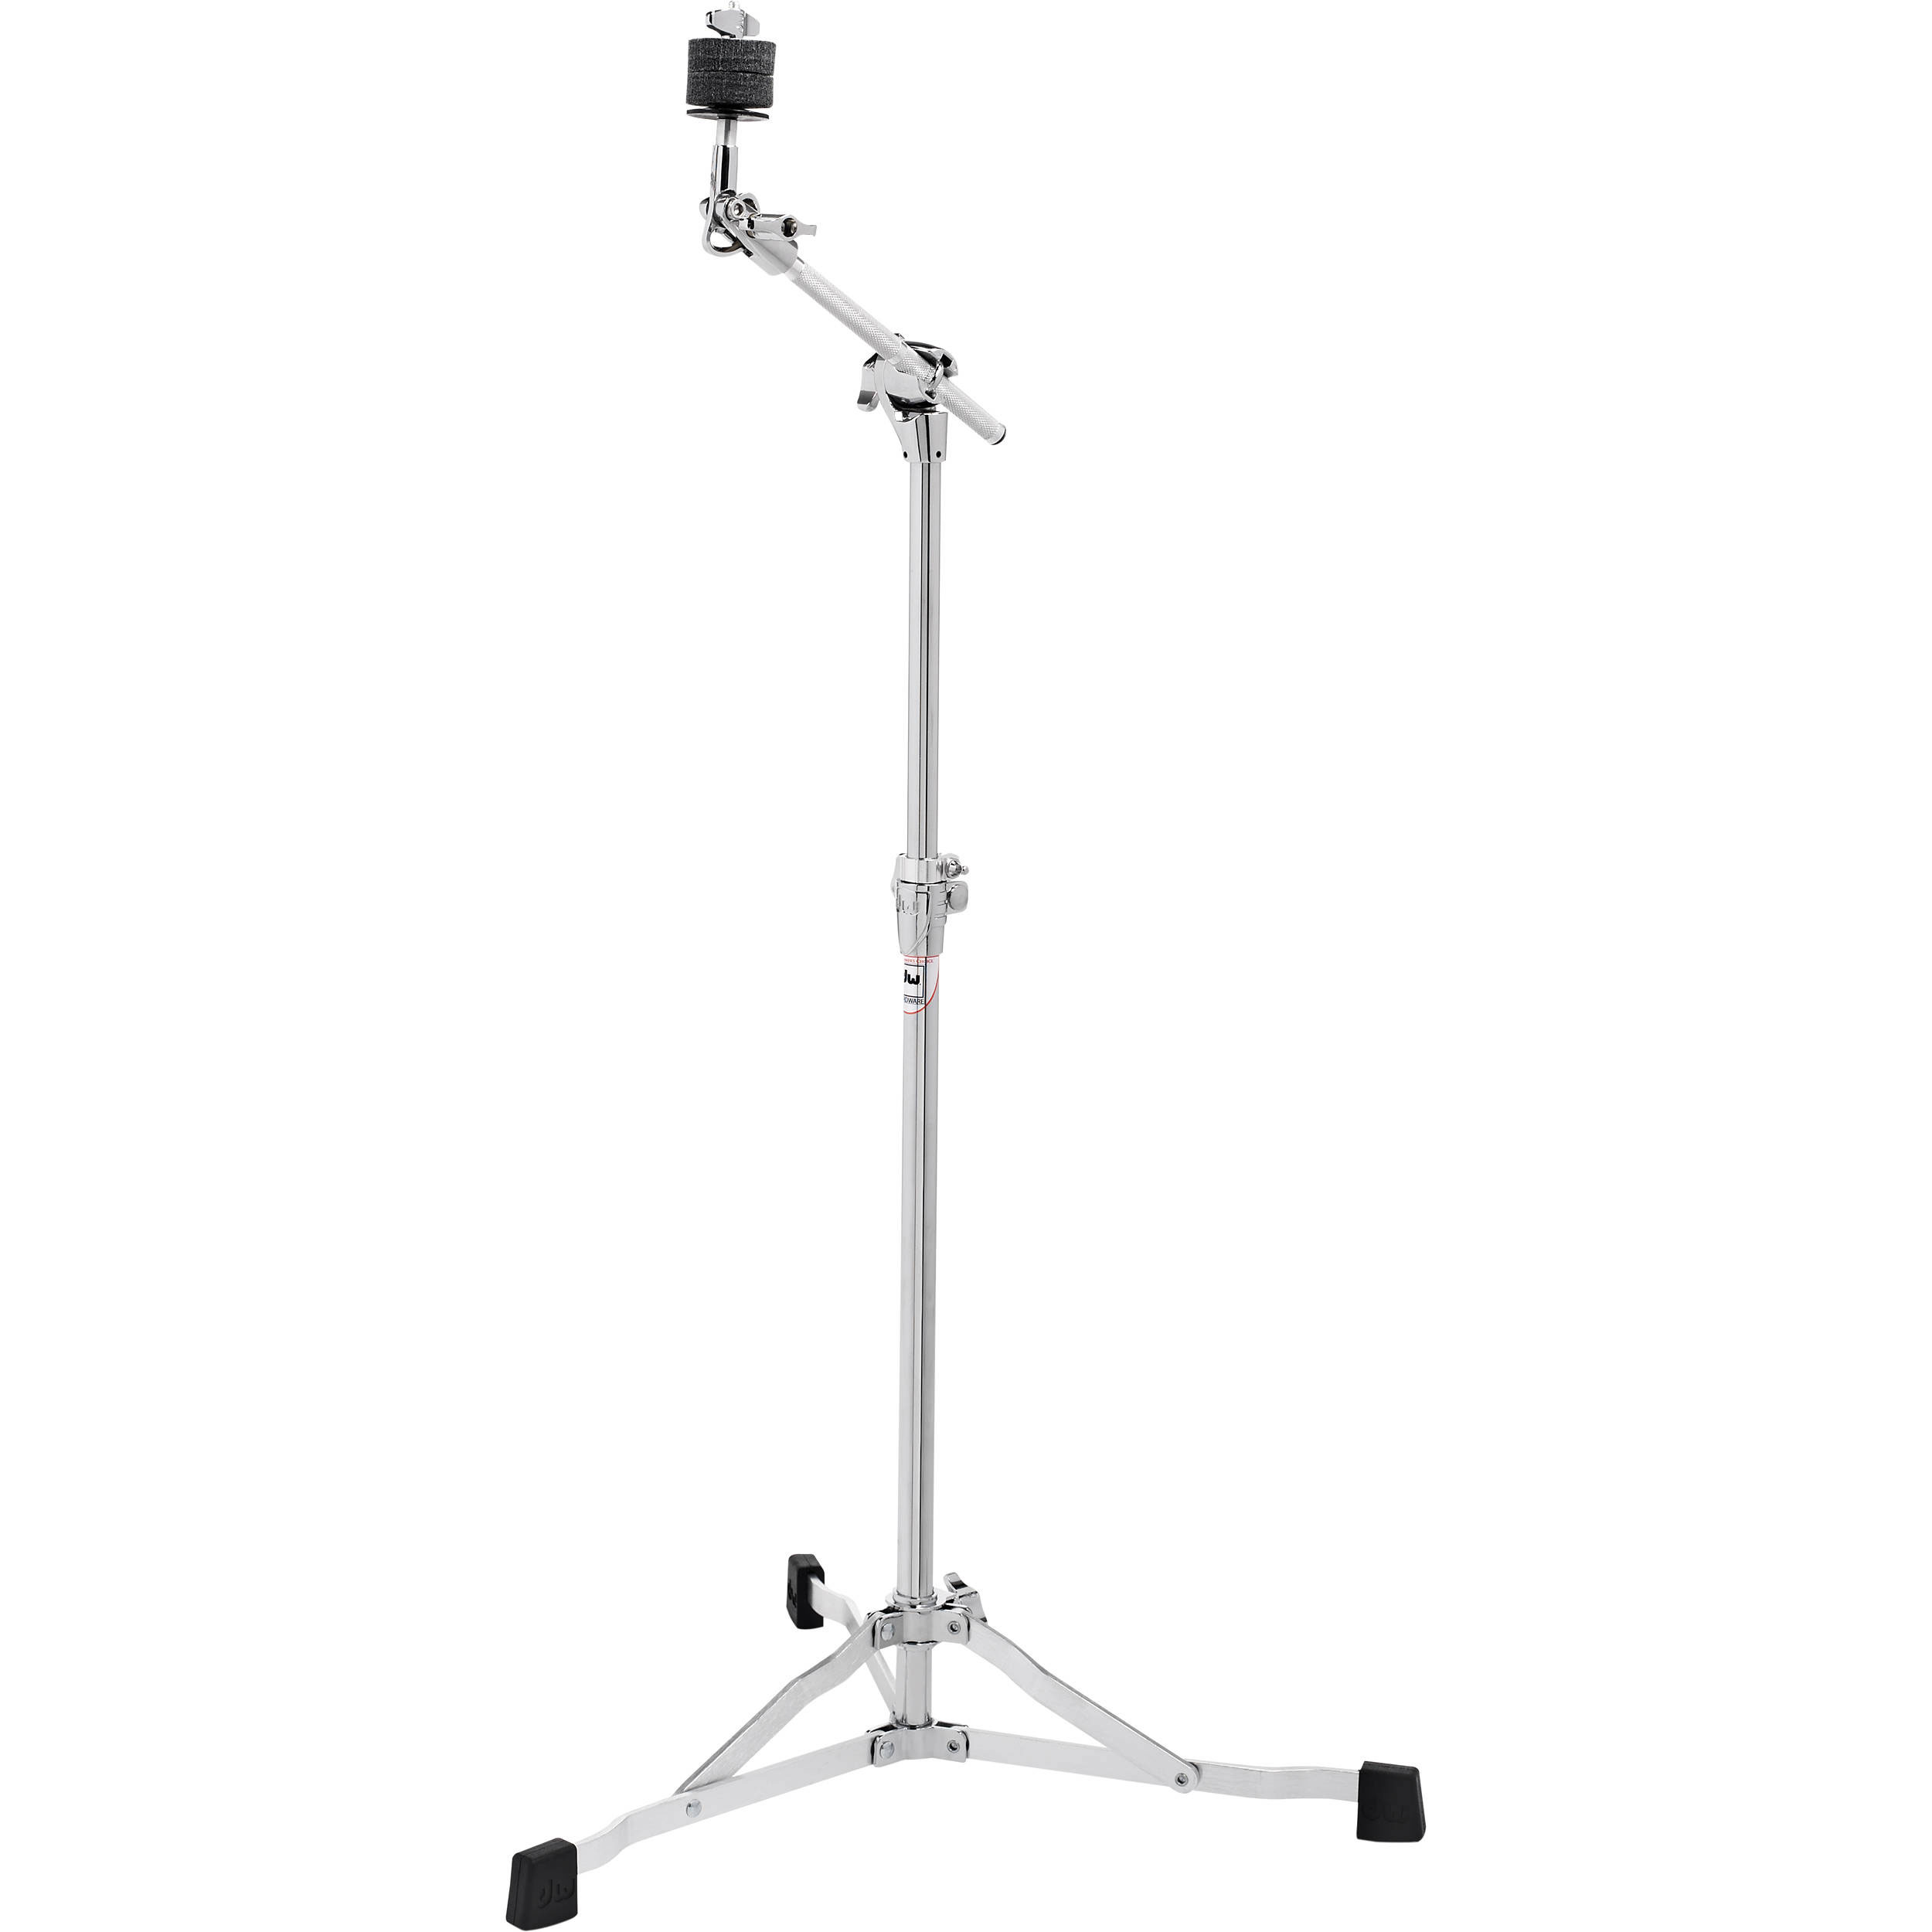 DW 6000 Series Ultralight Retro Flush-Base Boom Cymbal Stand